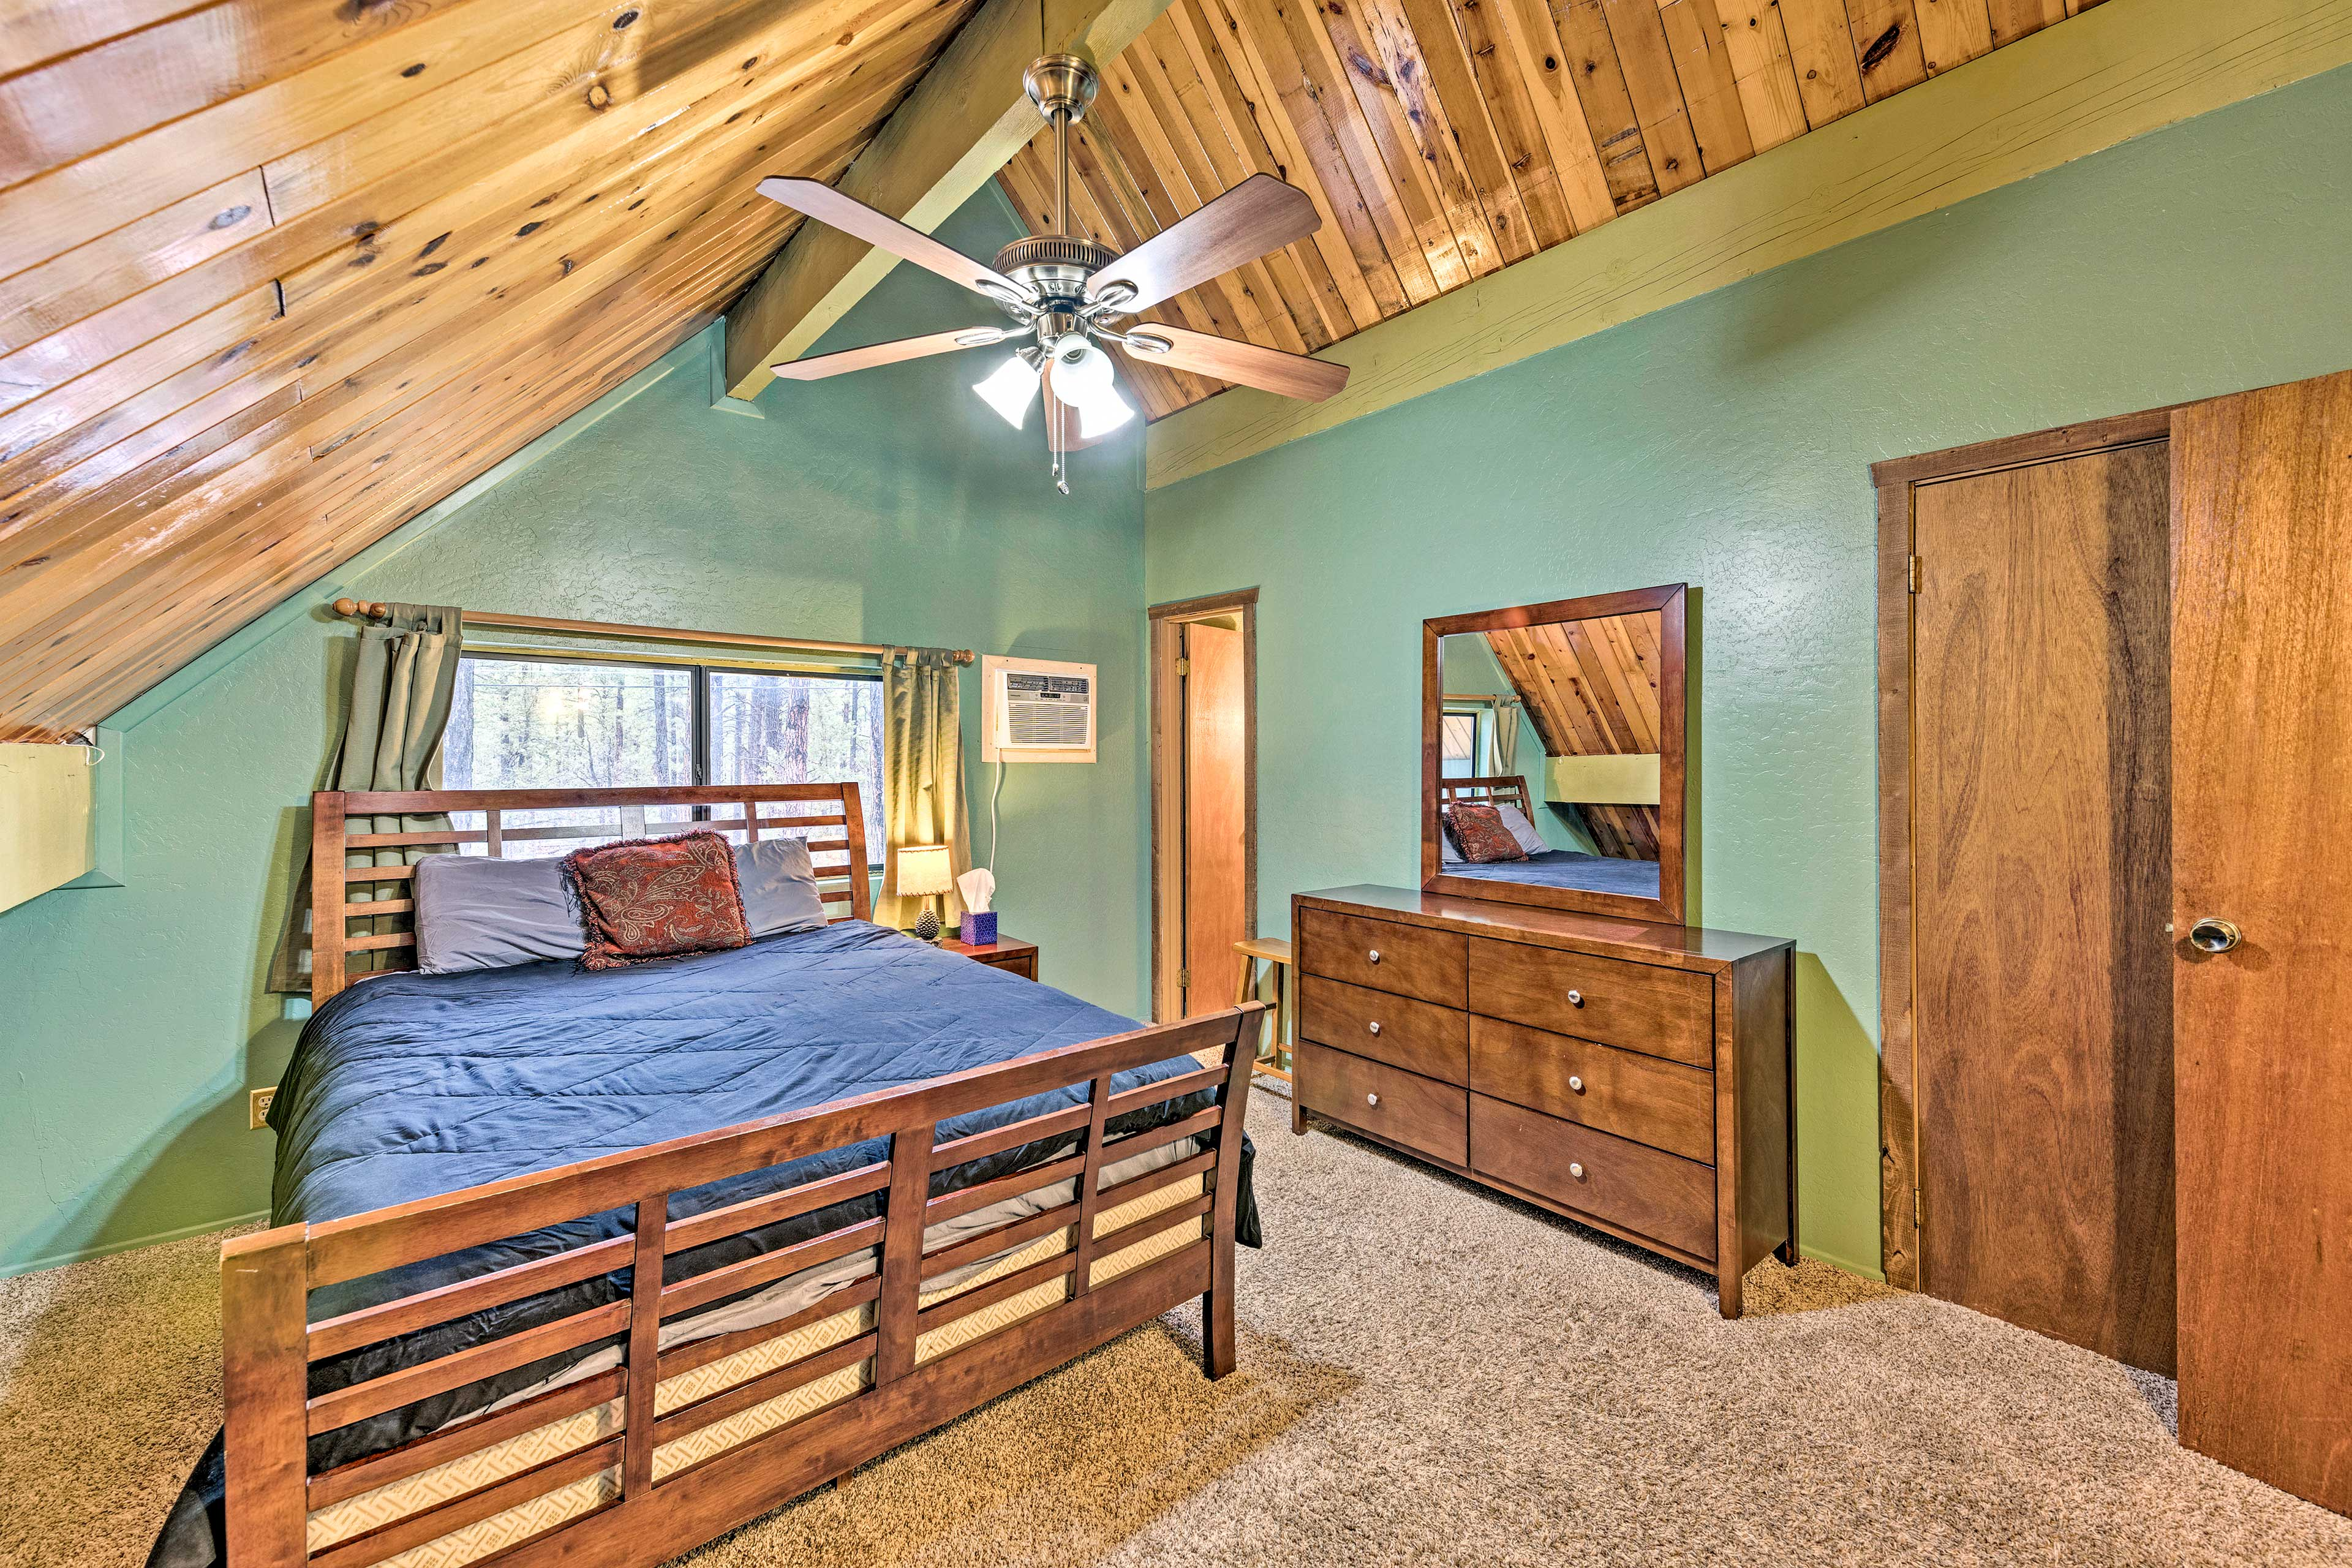 Another rustic bedroom can be found off the loft.